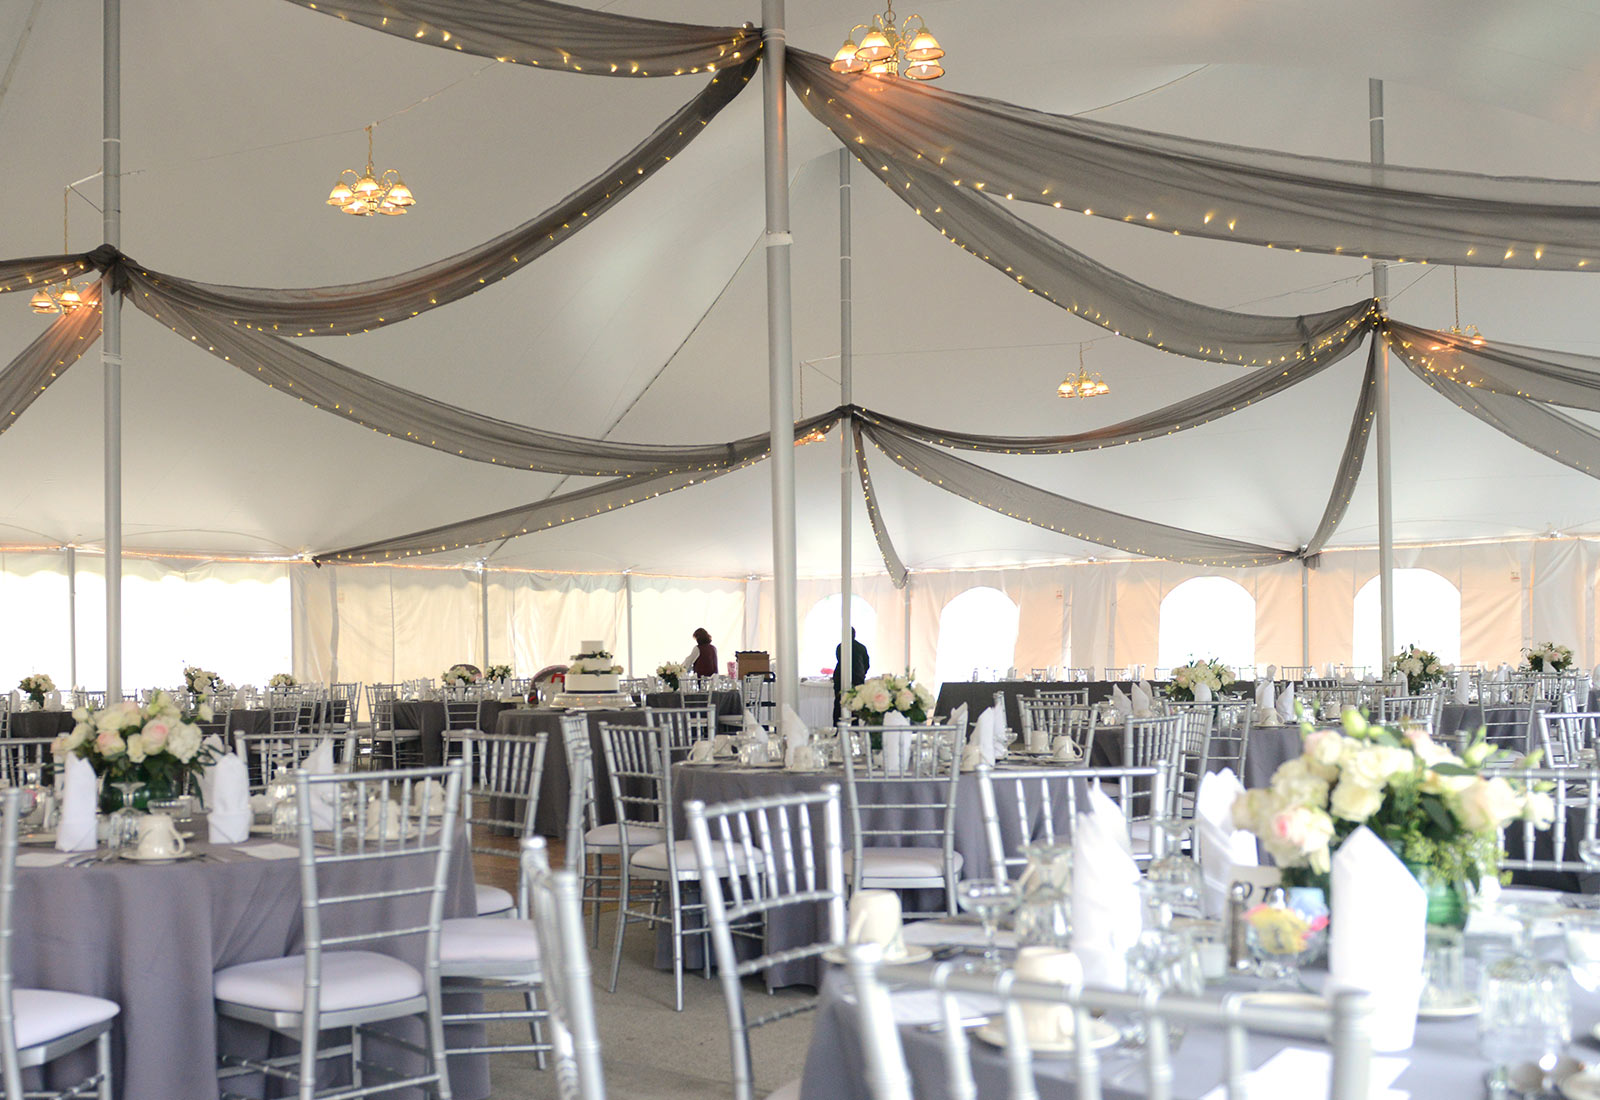 Elegant Tent Weddings & Weddings | Linden Hall